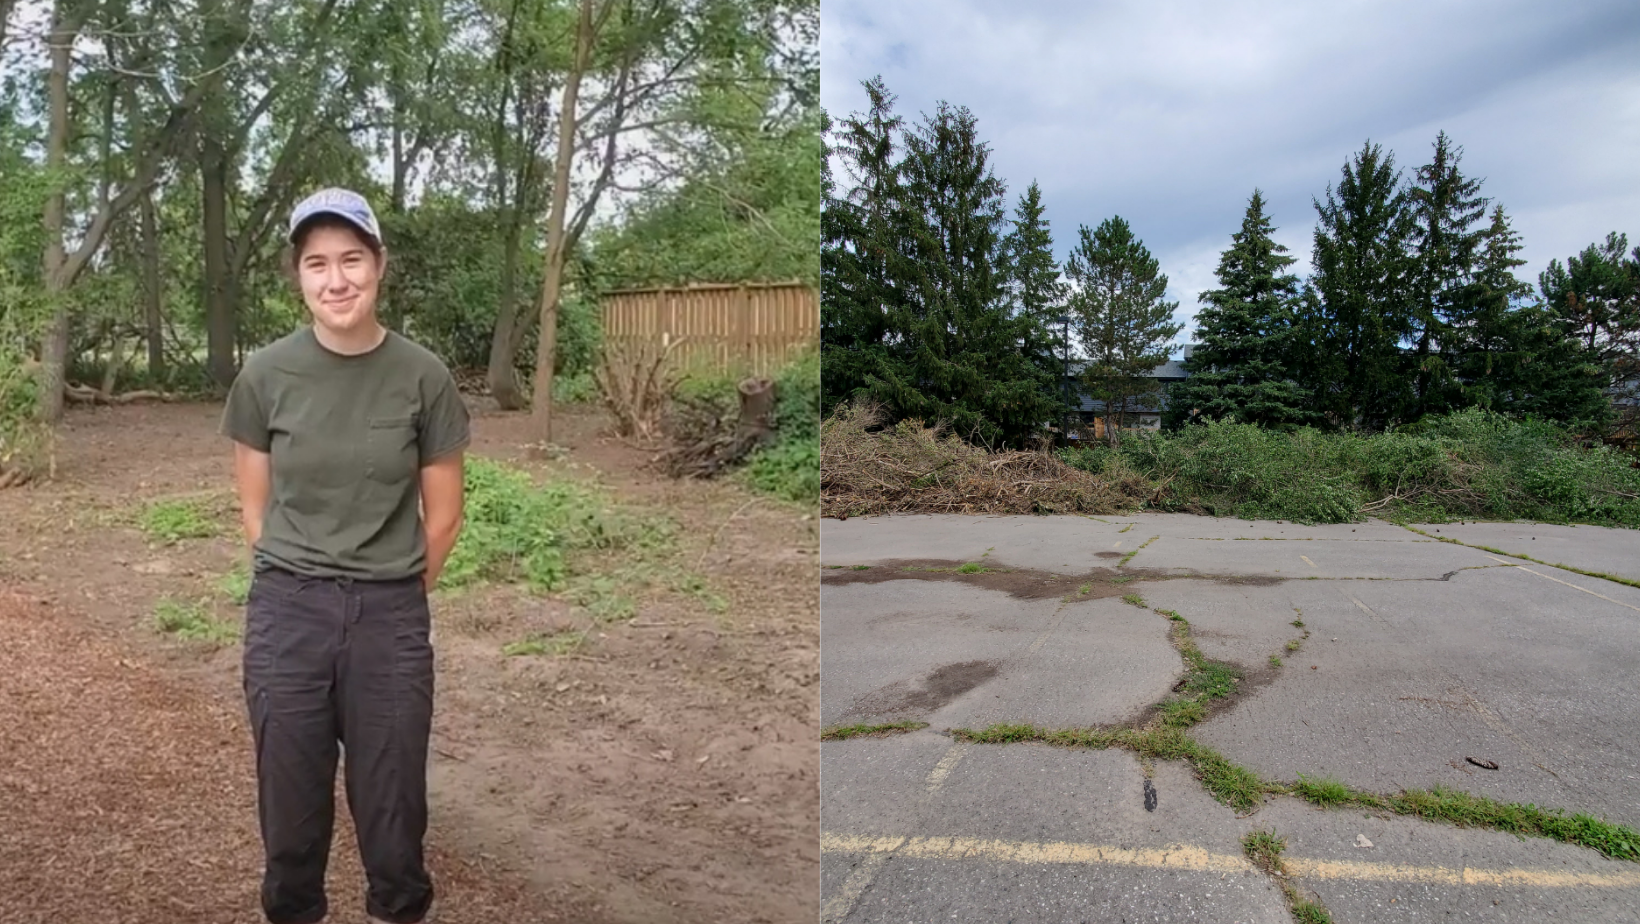 On left: Hannah Dieleman standing in the cleared-out area at Urban Roots Siloam United Church Location. On right: The giant pile of removed species and matted wood.